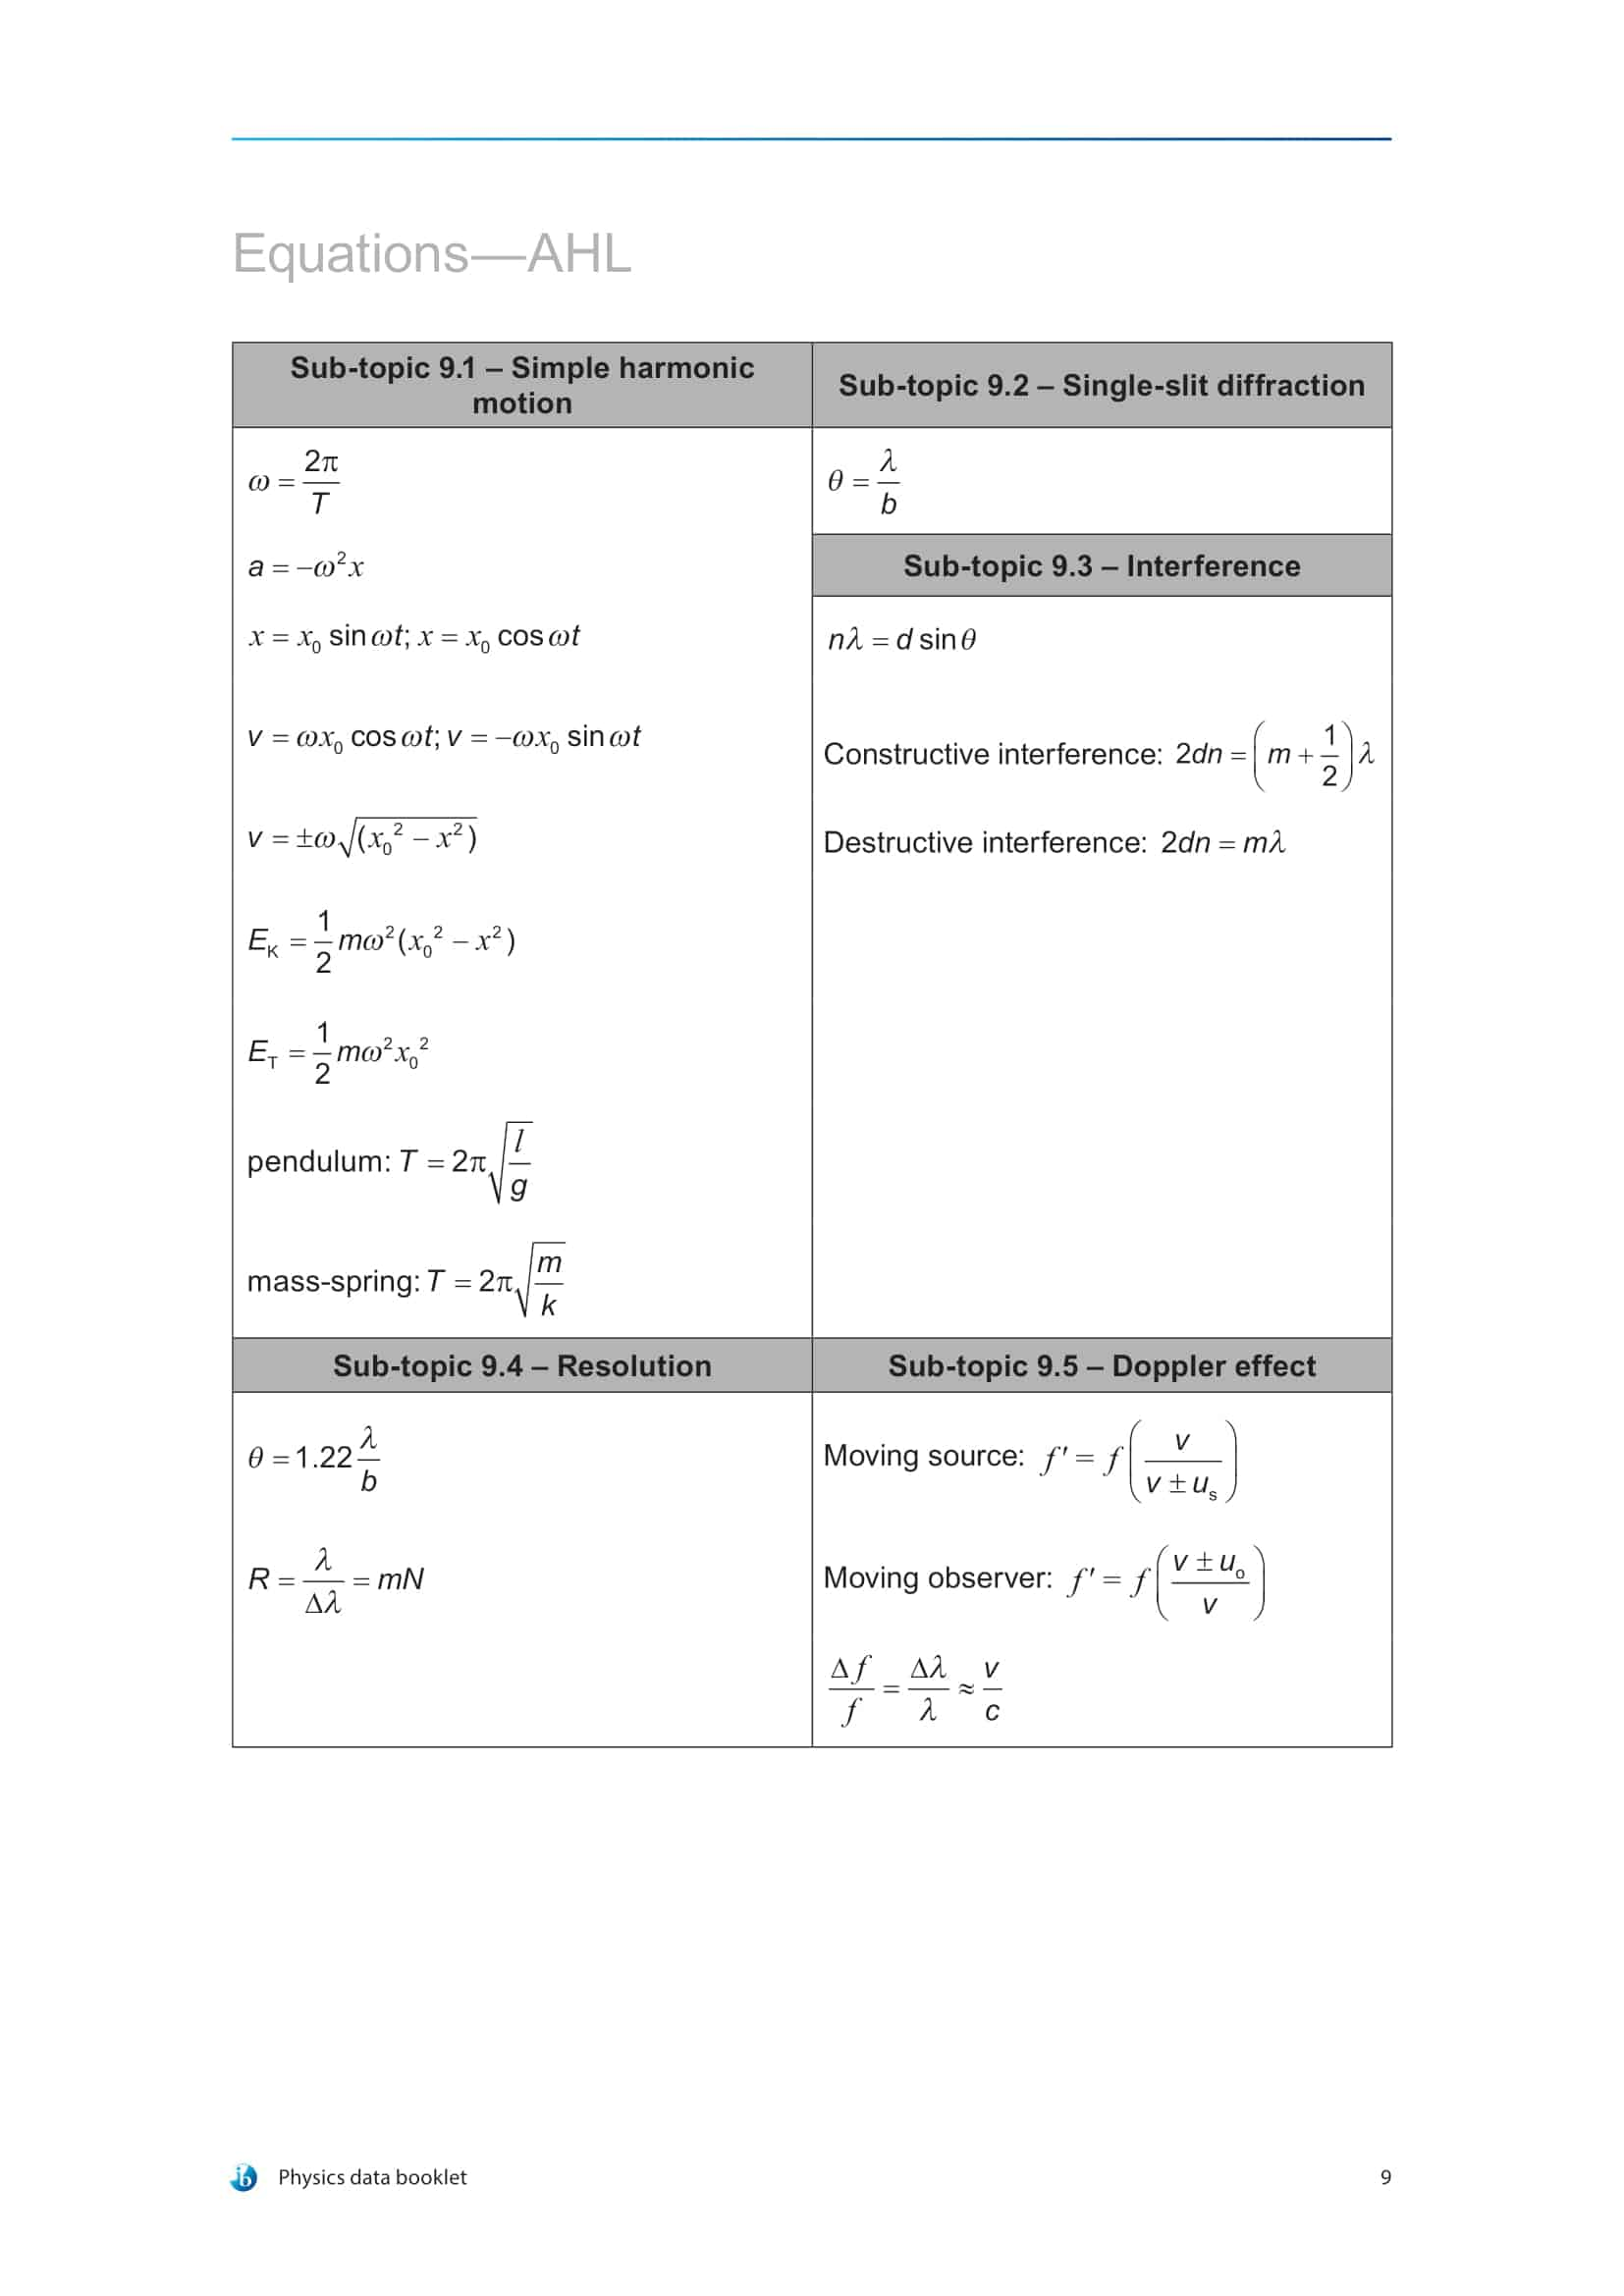 IB Physics Data Booklet-13